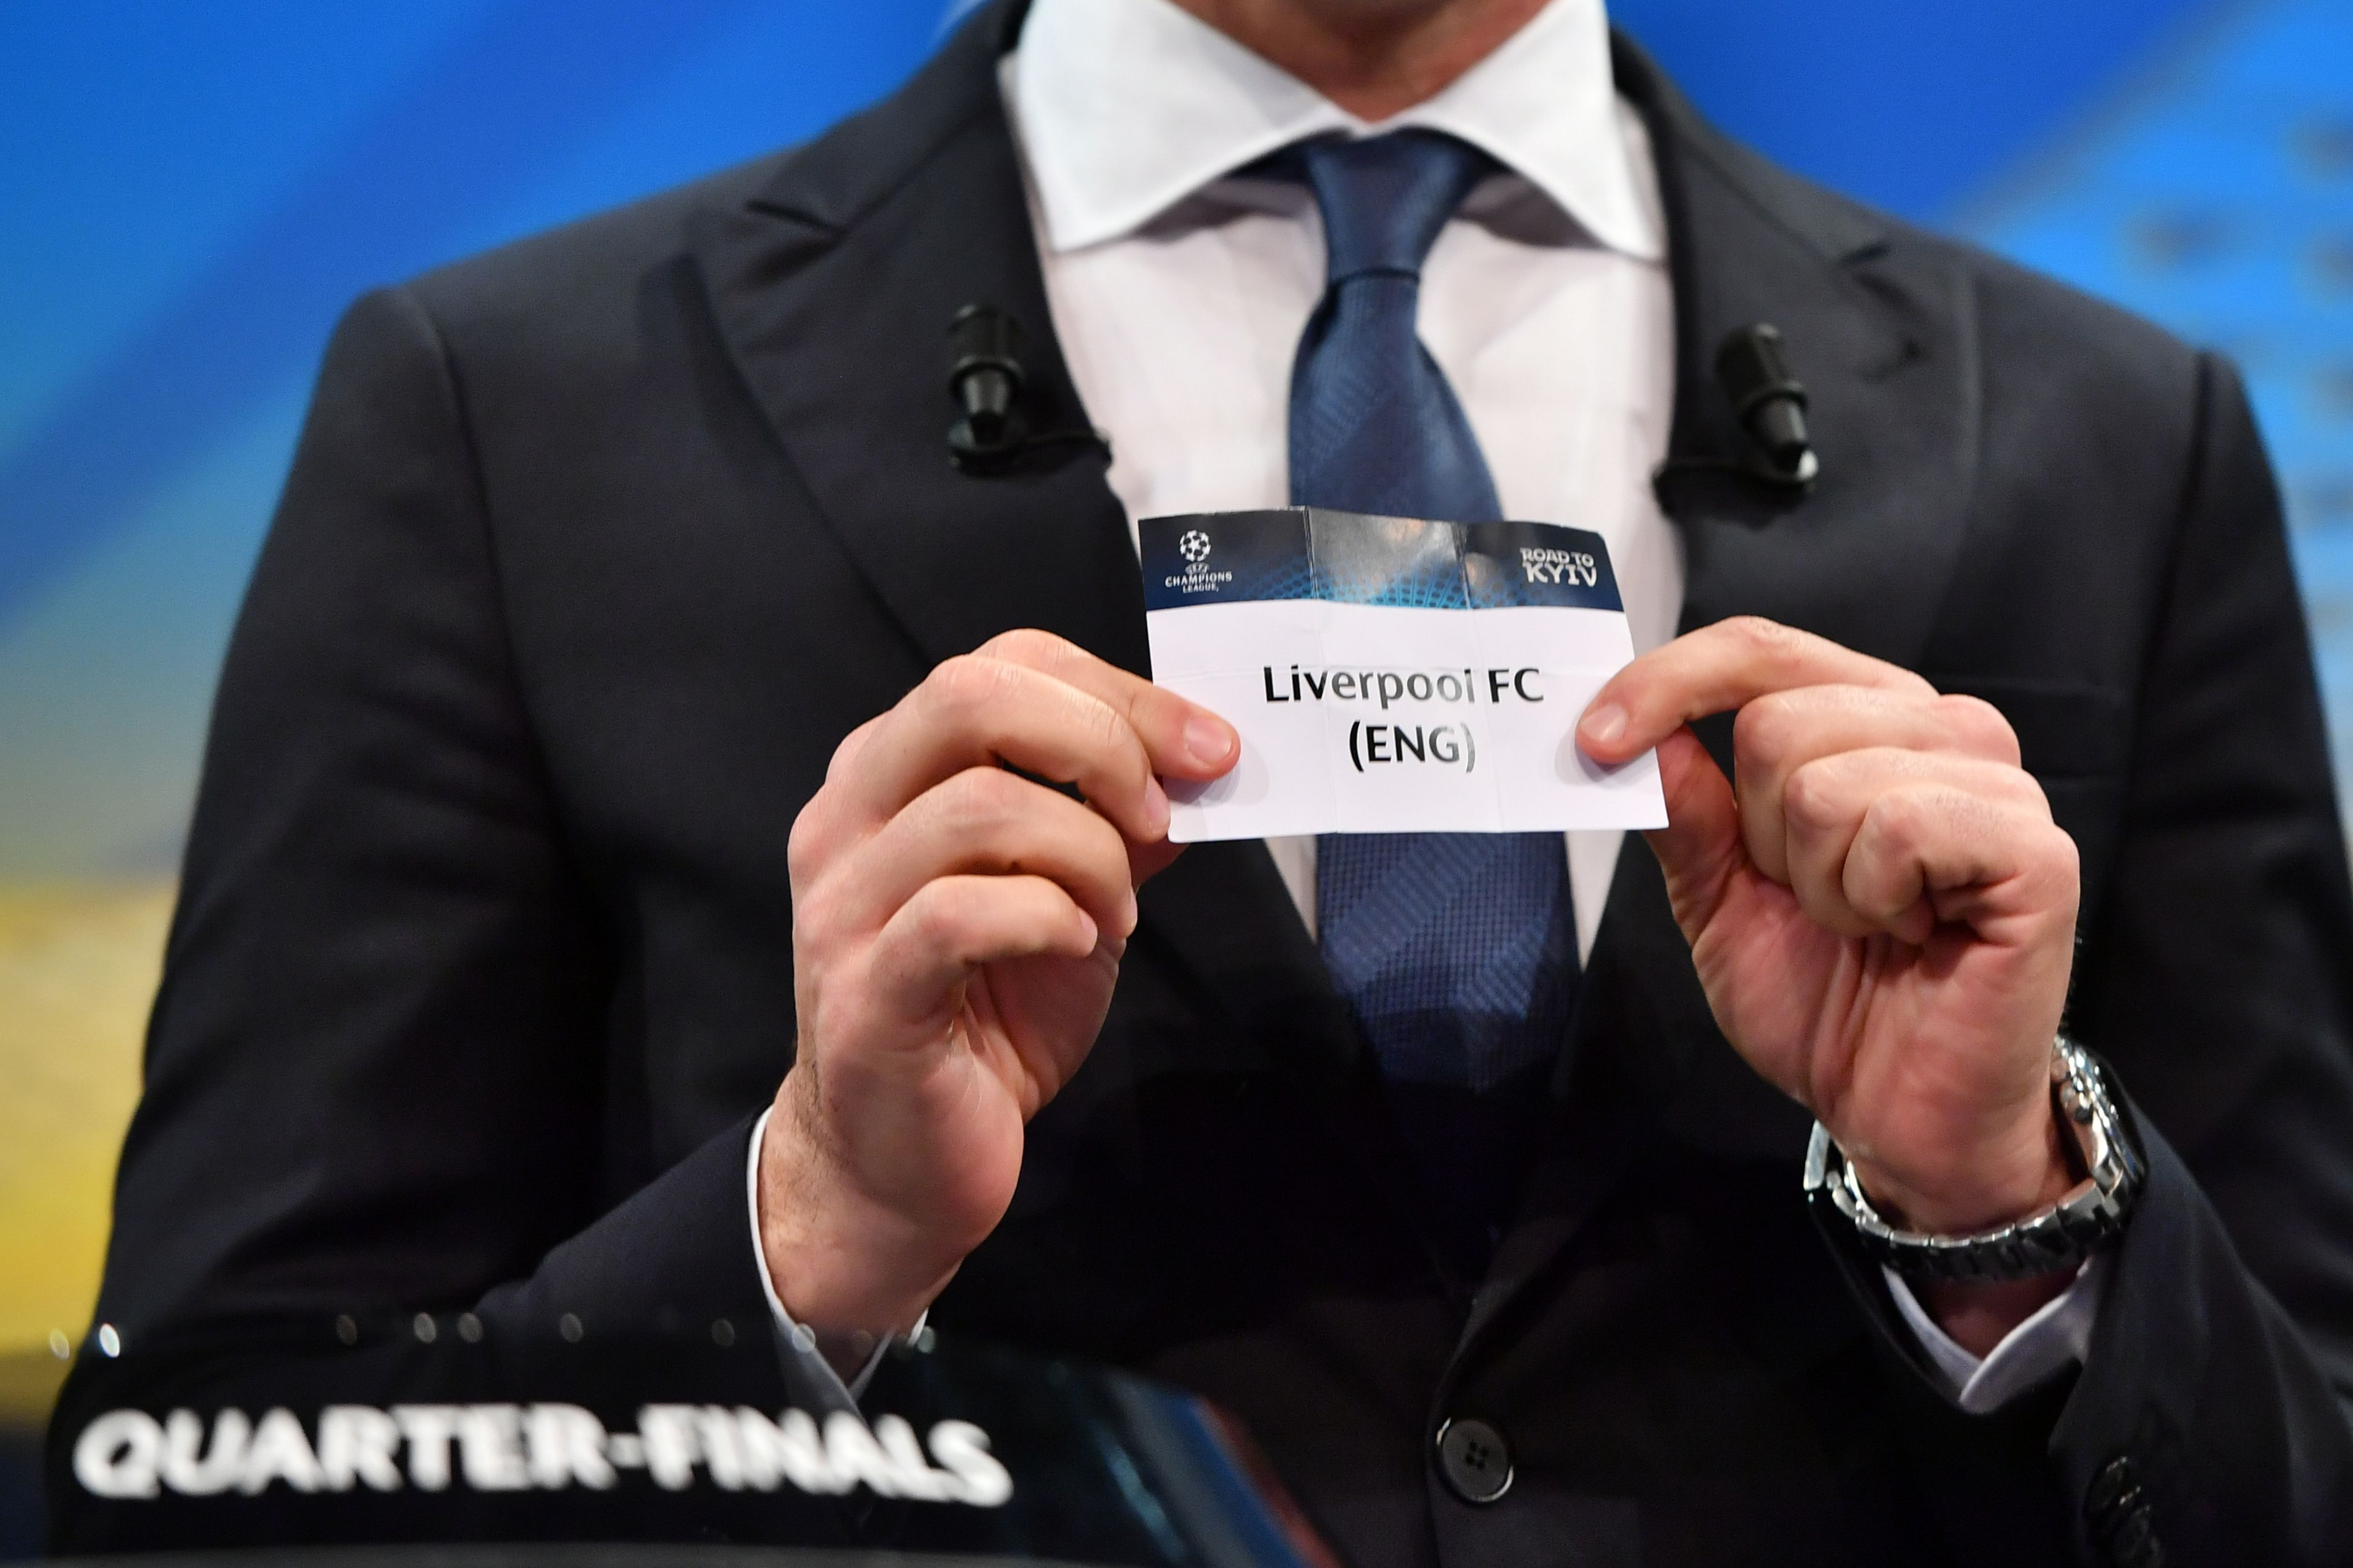 Champions League Quarterfinal Draw Liverpool Vs City Is Tie Of The